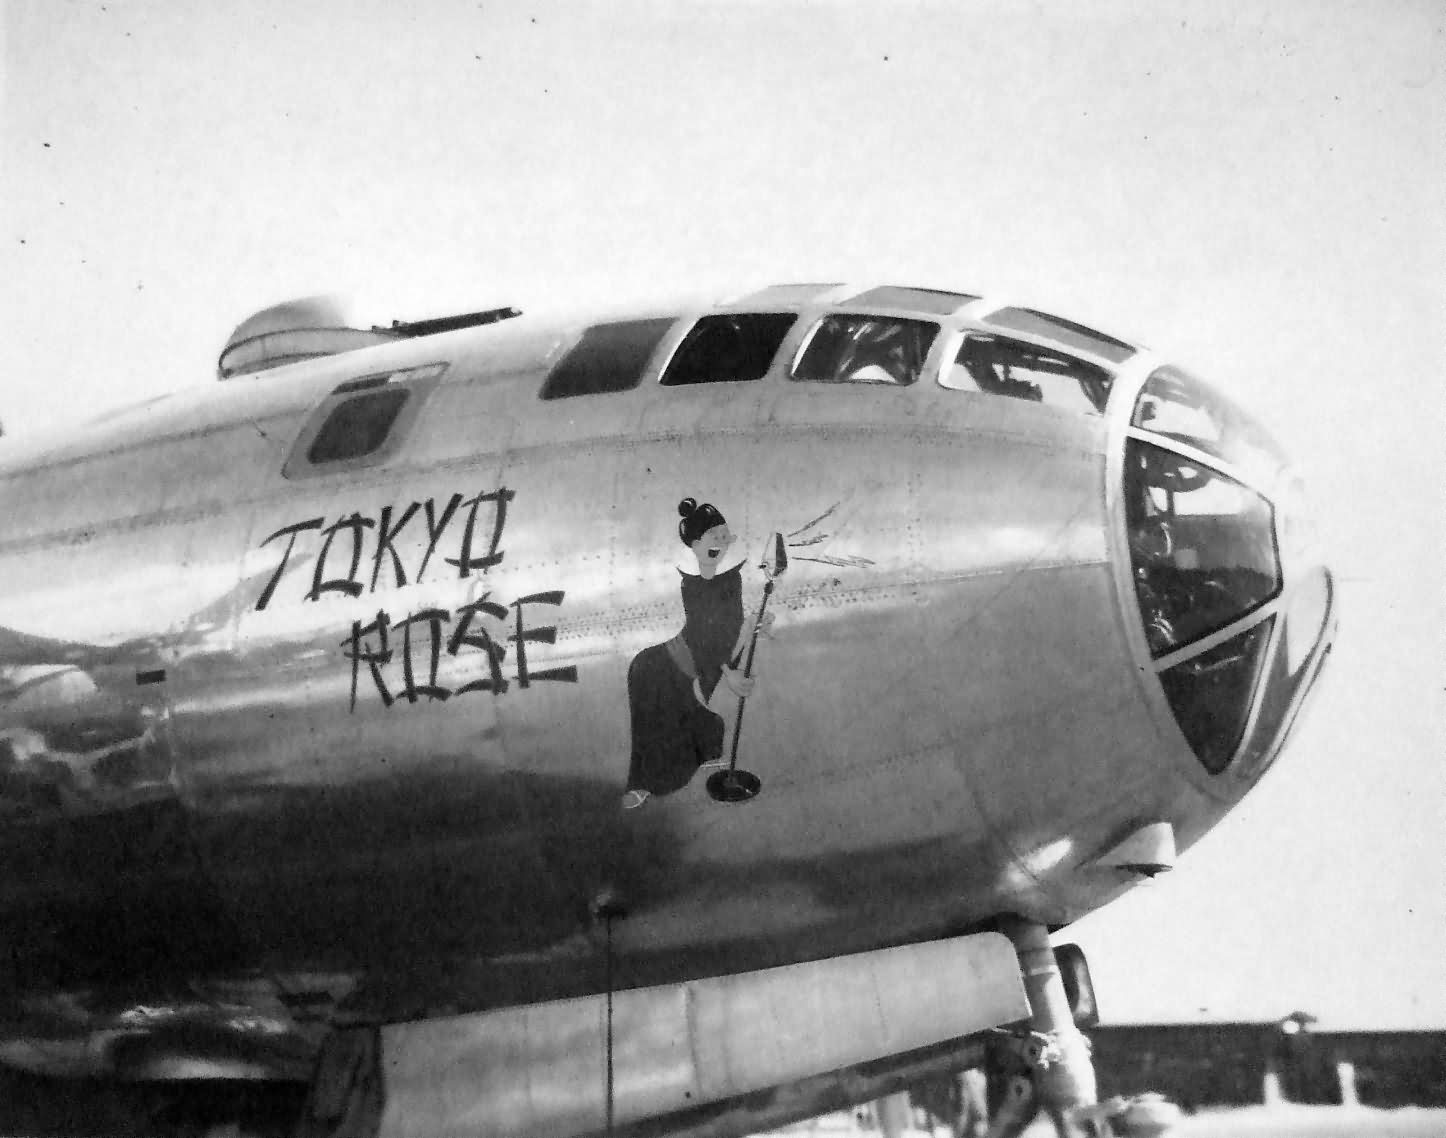 "B-29 Superfortress 42-93852 ""TOKYO ROSE"" of the 3rd Photo Reconnaissance Squadron (3 PRS) -Tinian 1945"